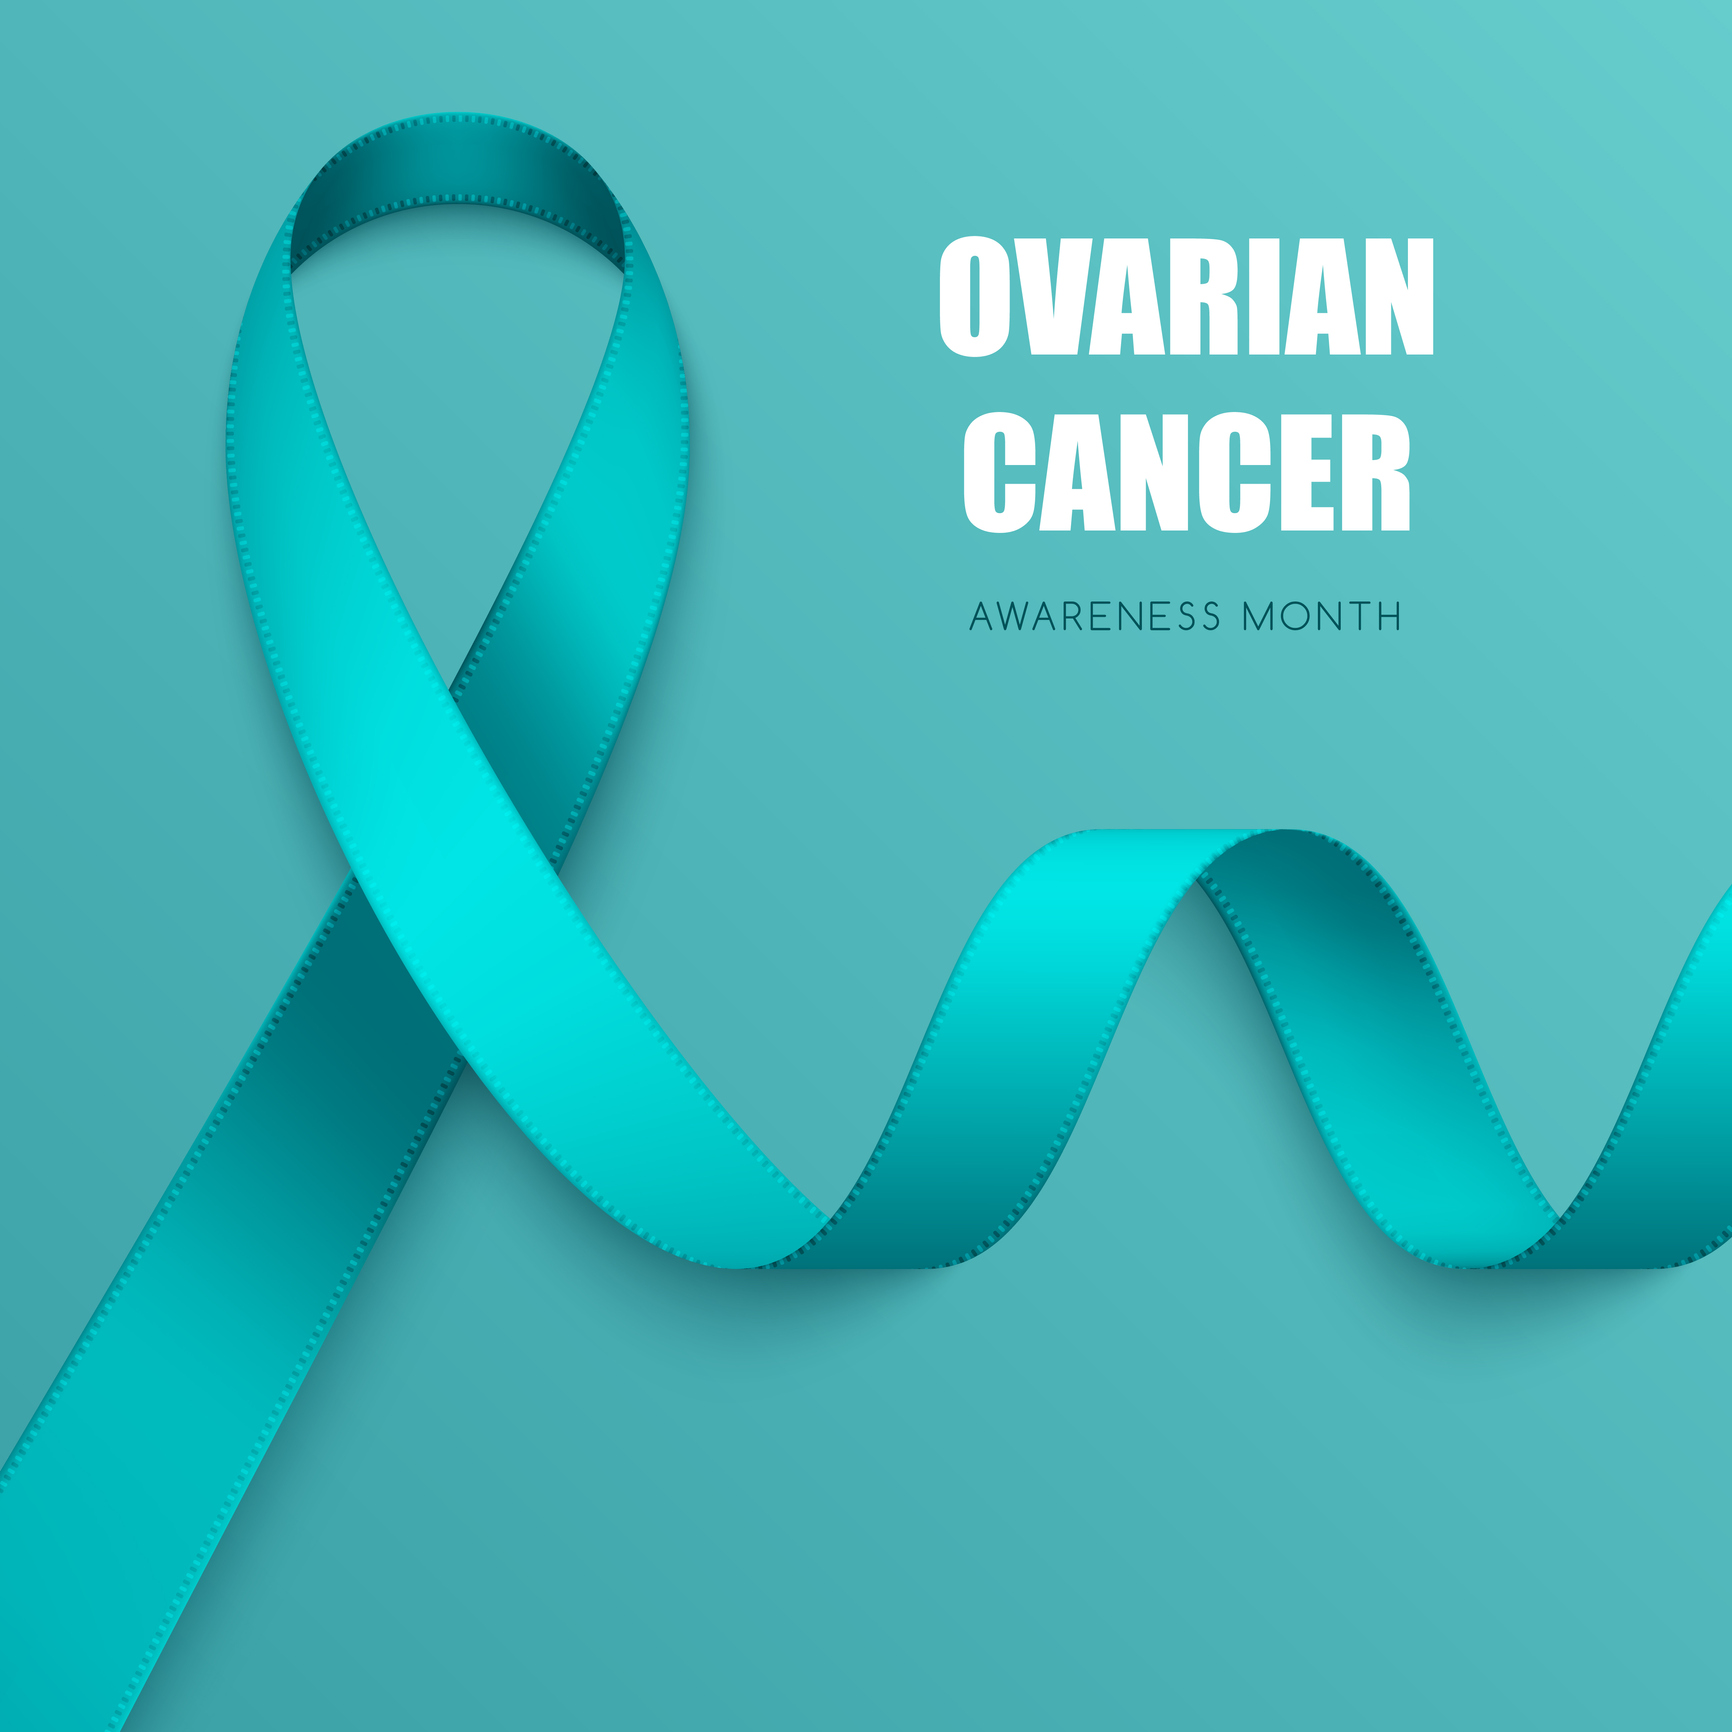 10 Warning Signs Of Ovarian Cancer You Should Be Aware Of Living Healthy